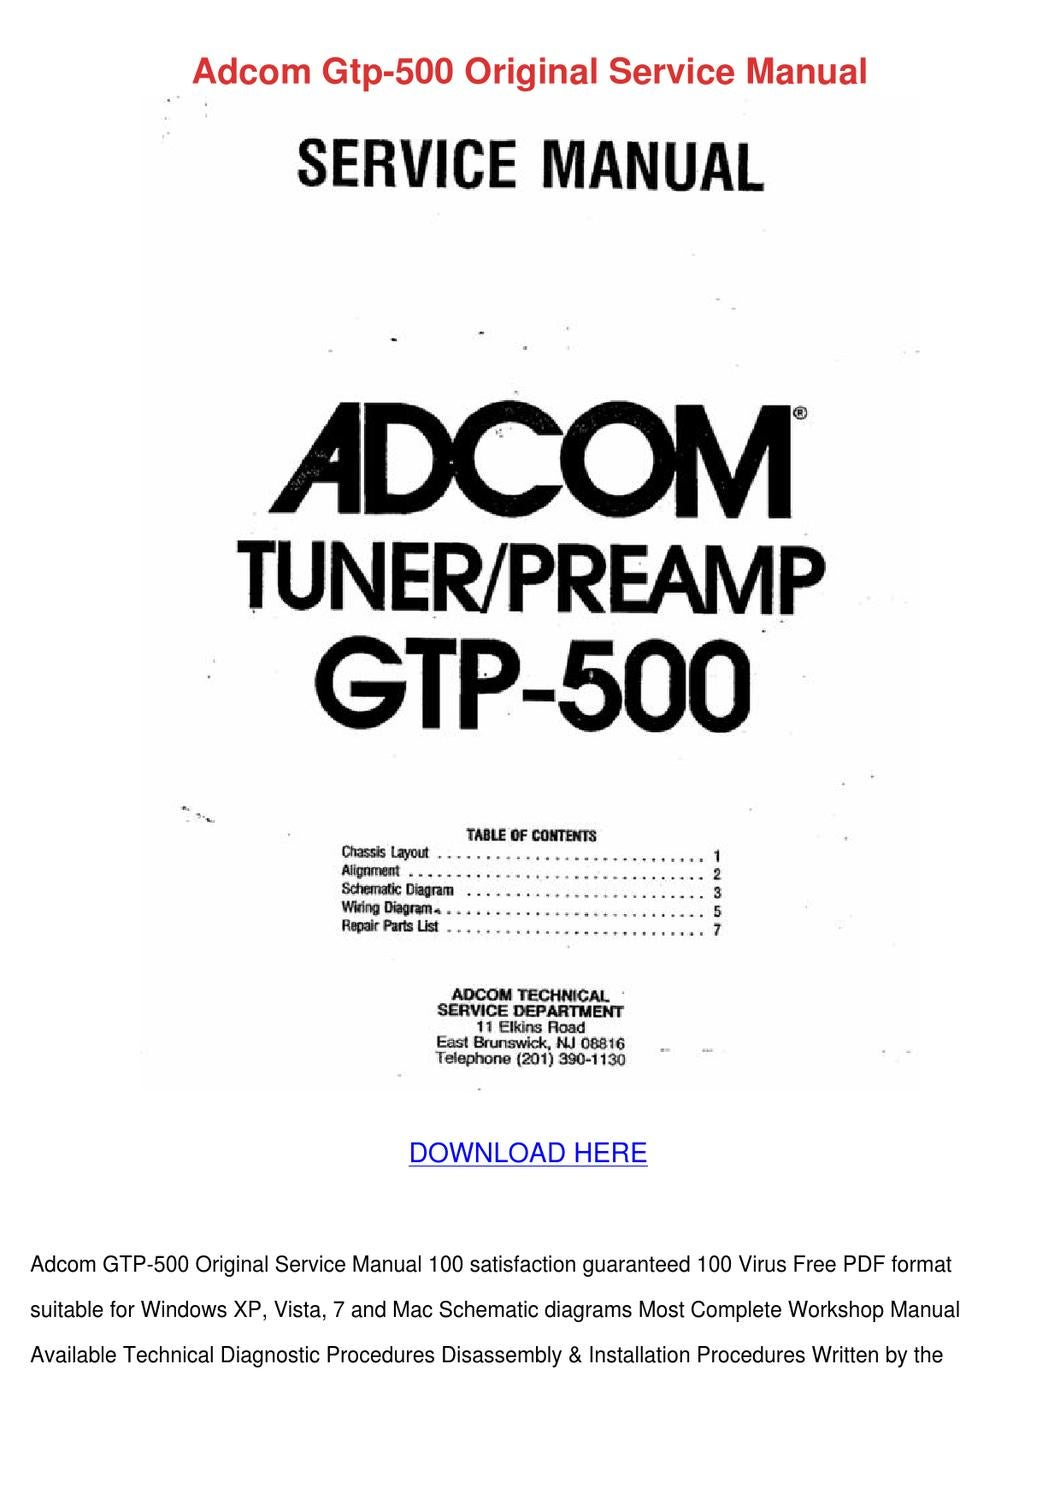 Adcom Gtp 500 Original Service Manual By Maxmcnally Issuu Wiring Diagram For Workshop Free Download Schematic